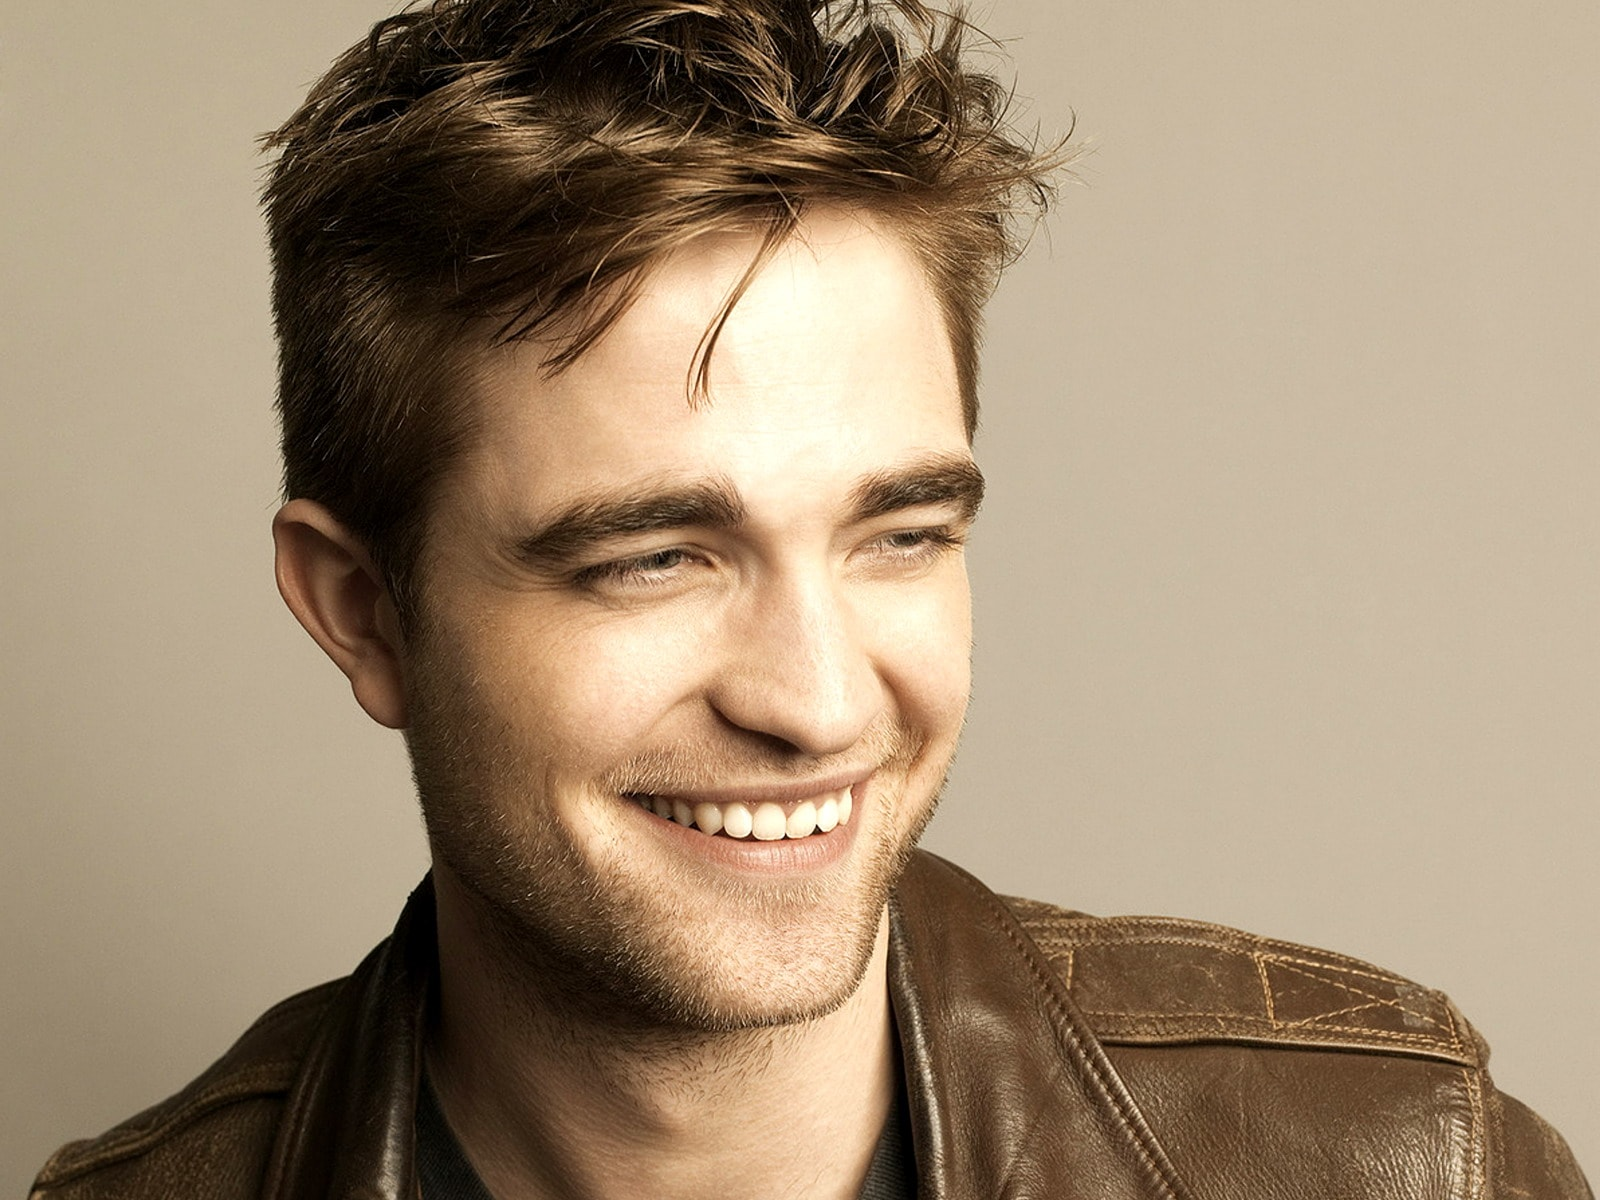 Robert Pattinson Backgrounds